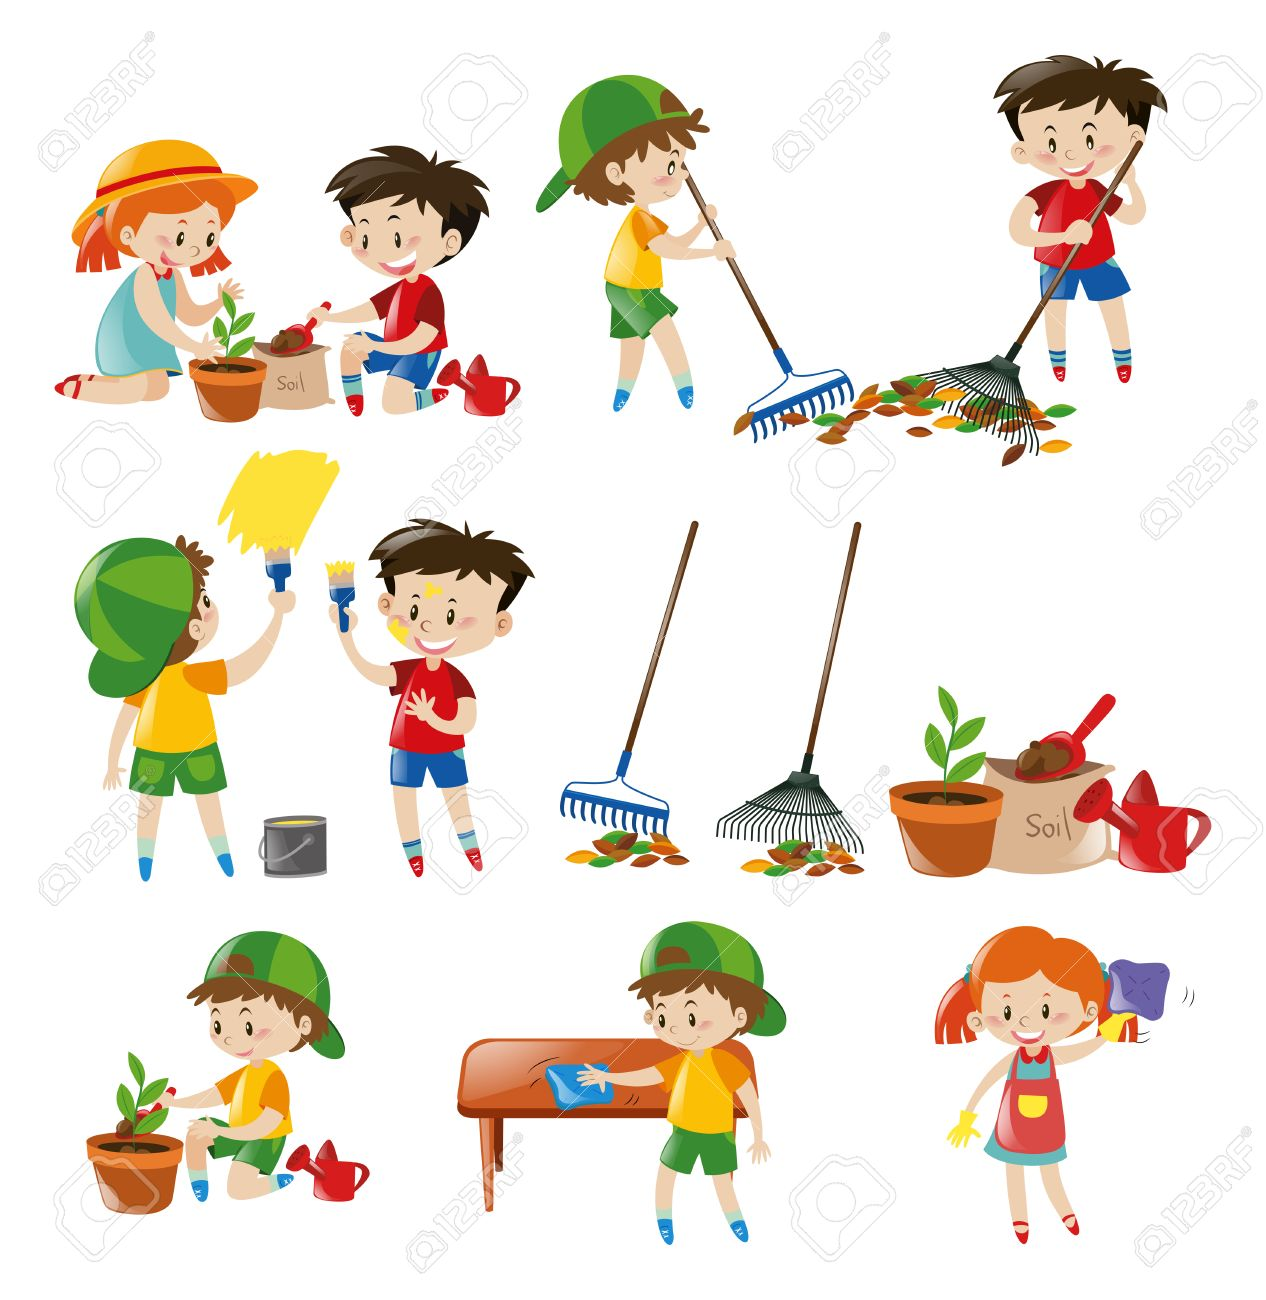 children doing different chores illustration royalty free cliparts